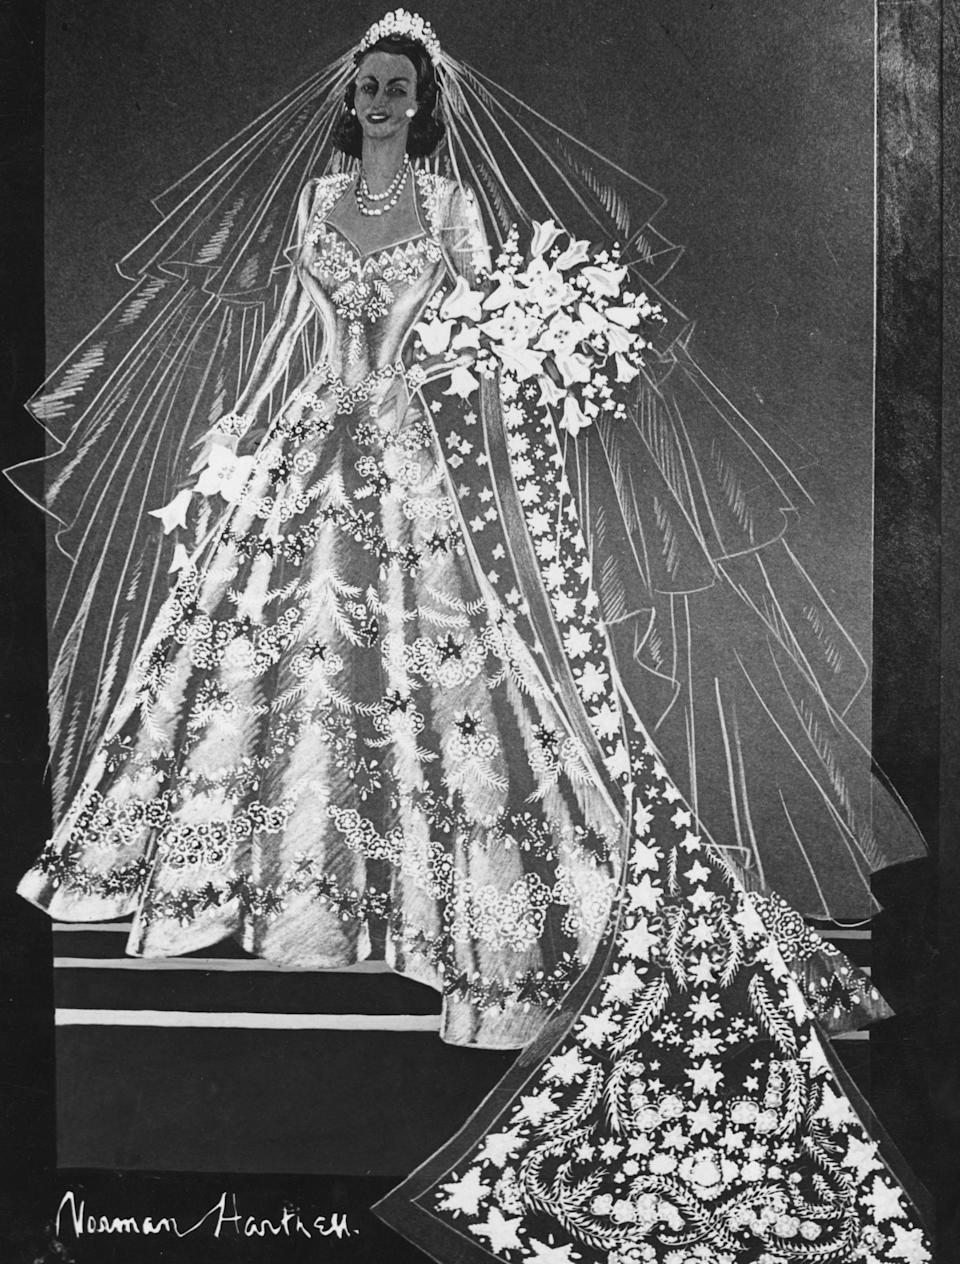 A sketch of Princess Elizabeth's wedding dress.